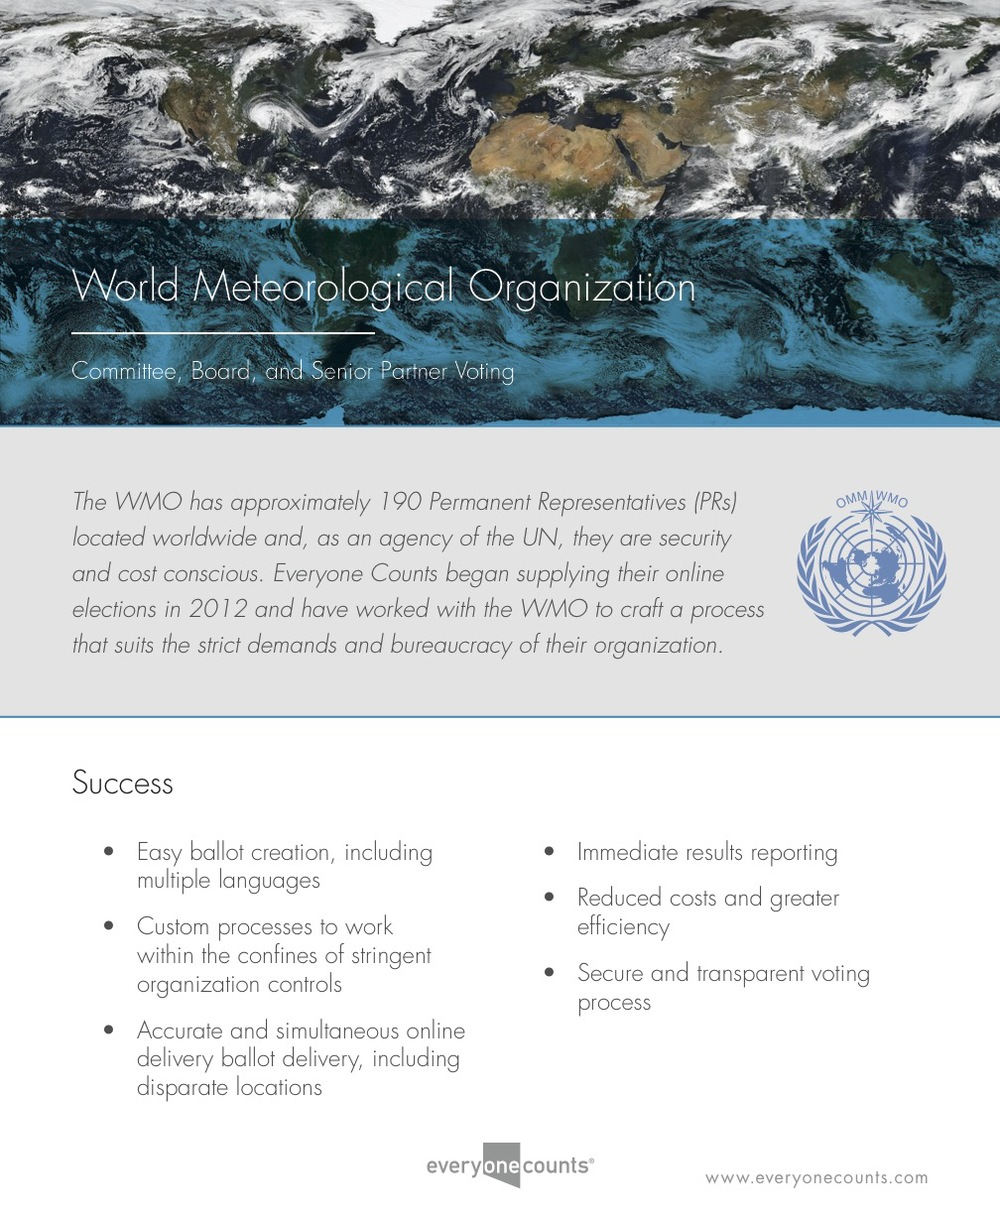 EC-CS-WMO World Meteorological Organization.jpeg